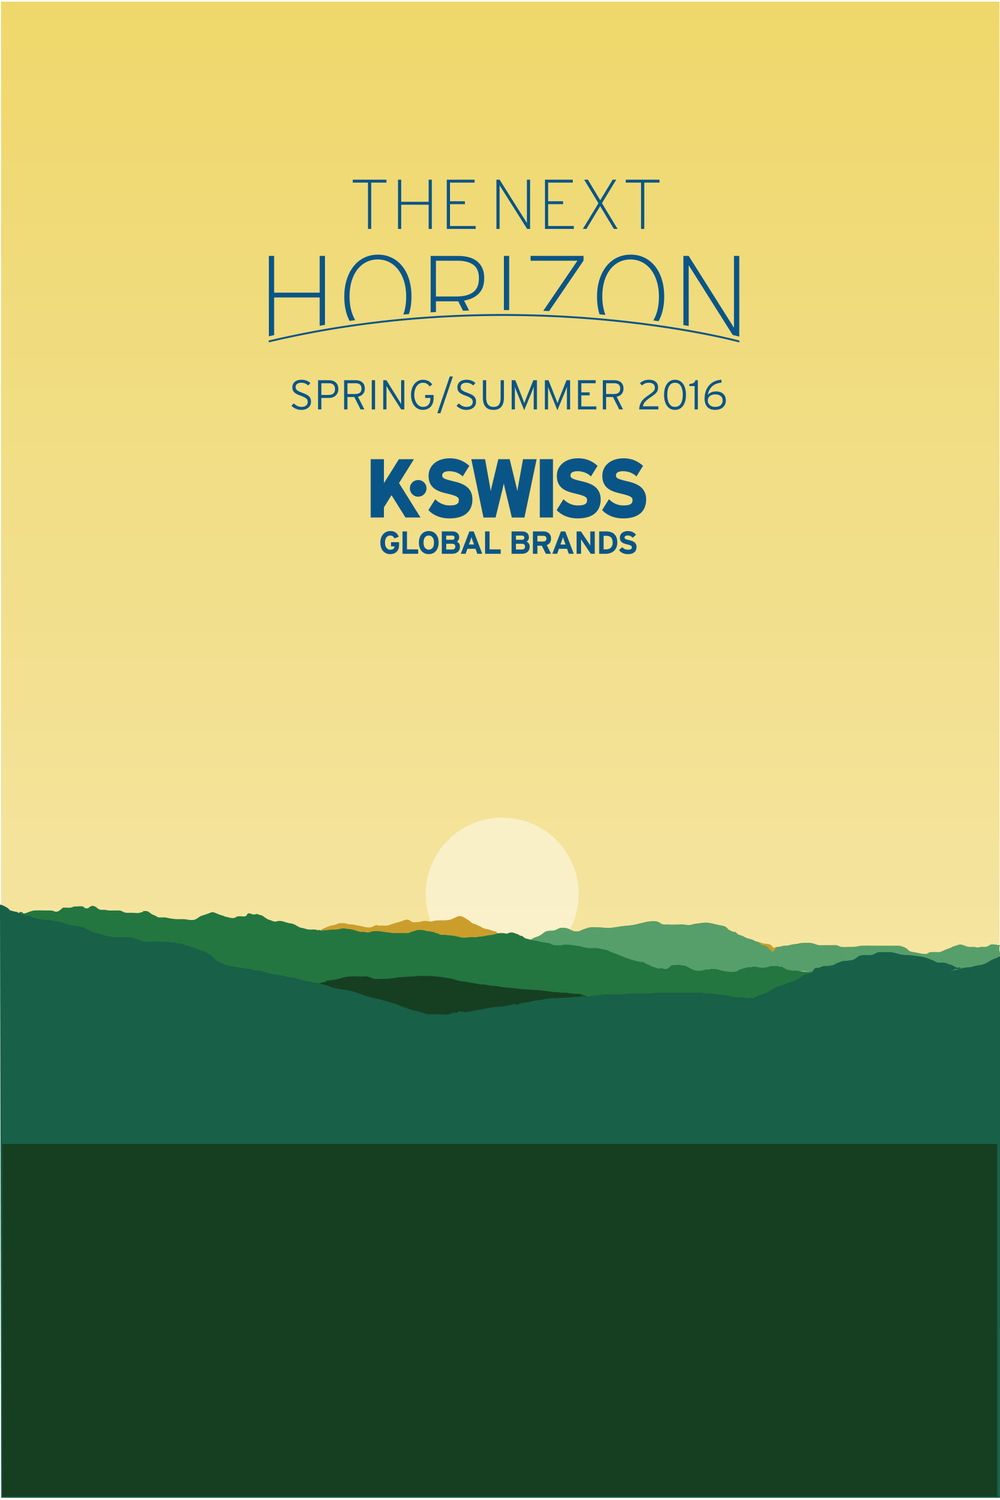 kswiss-poster3.png